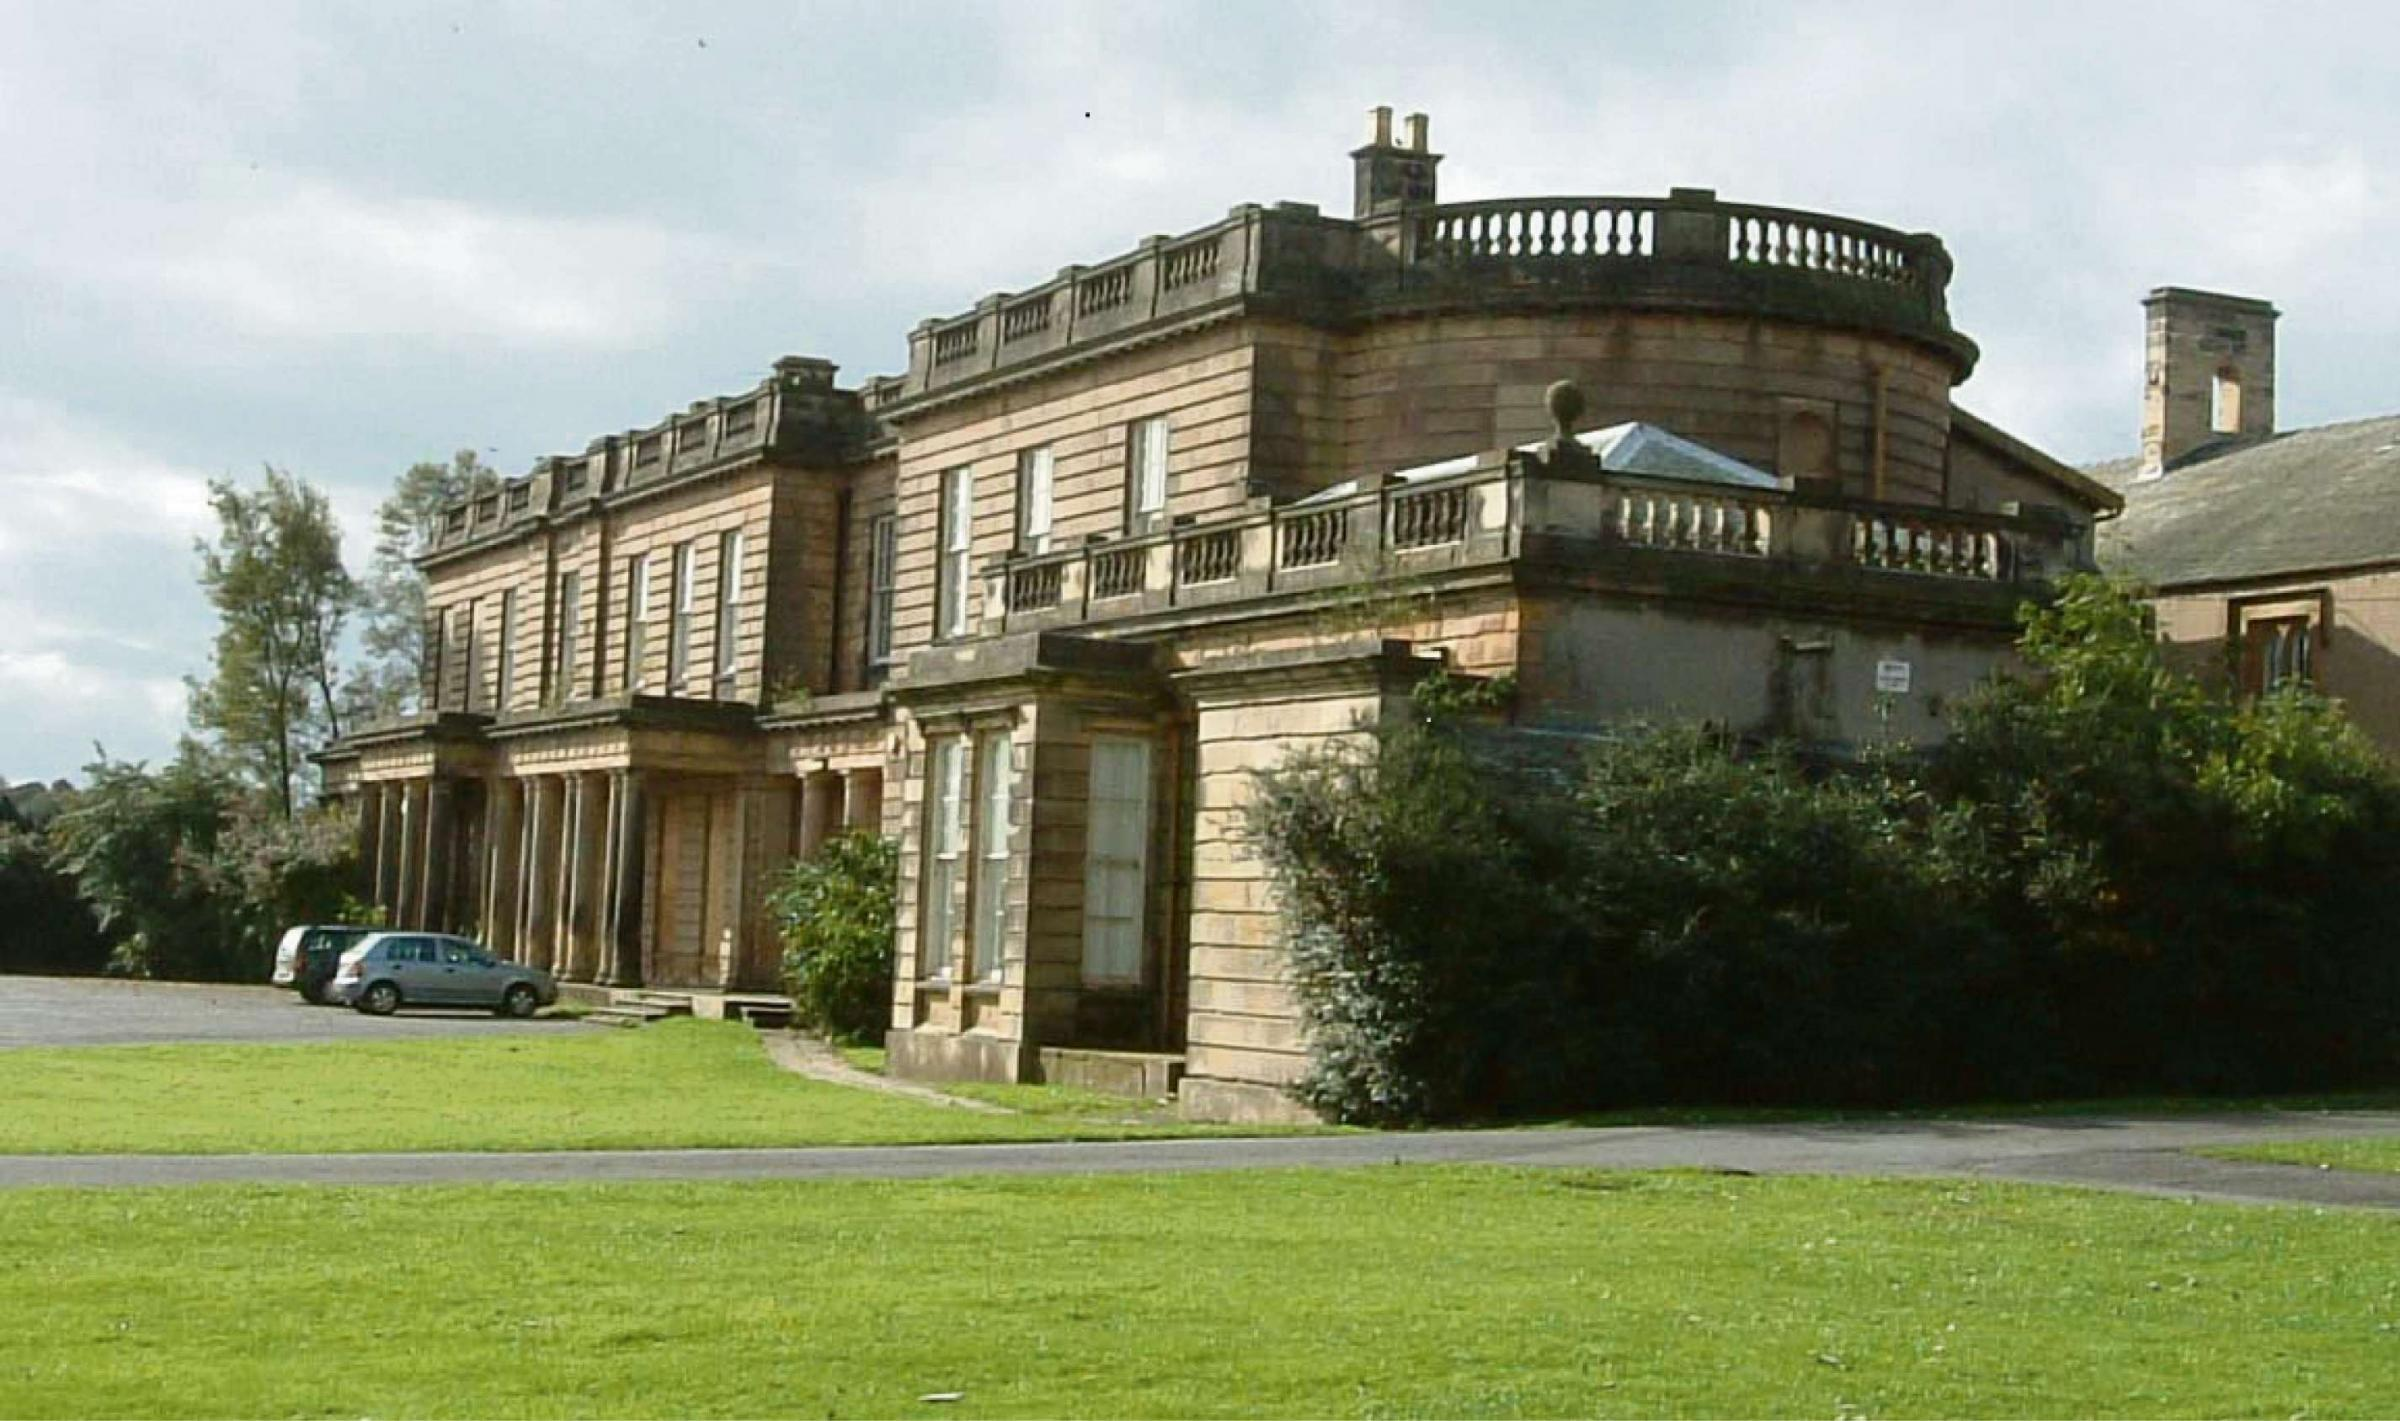 POLICE COMPLAINT: The sale of Windlestone Hall, near Rushyford, County Durham, has been referred to the police